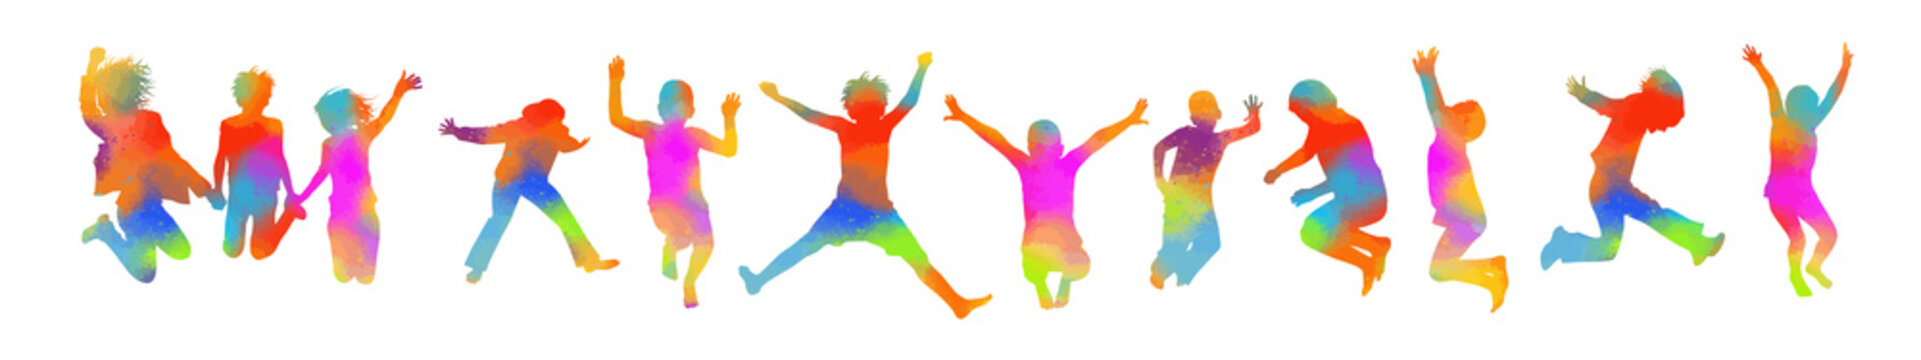 Colored jumping people. Happy children. Vector illustration